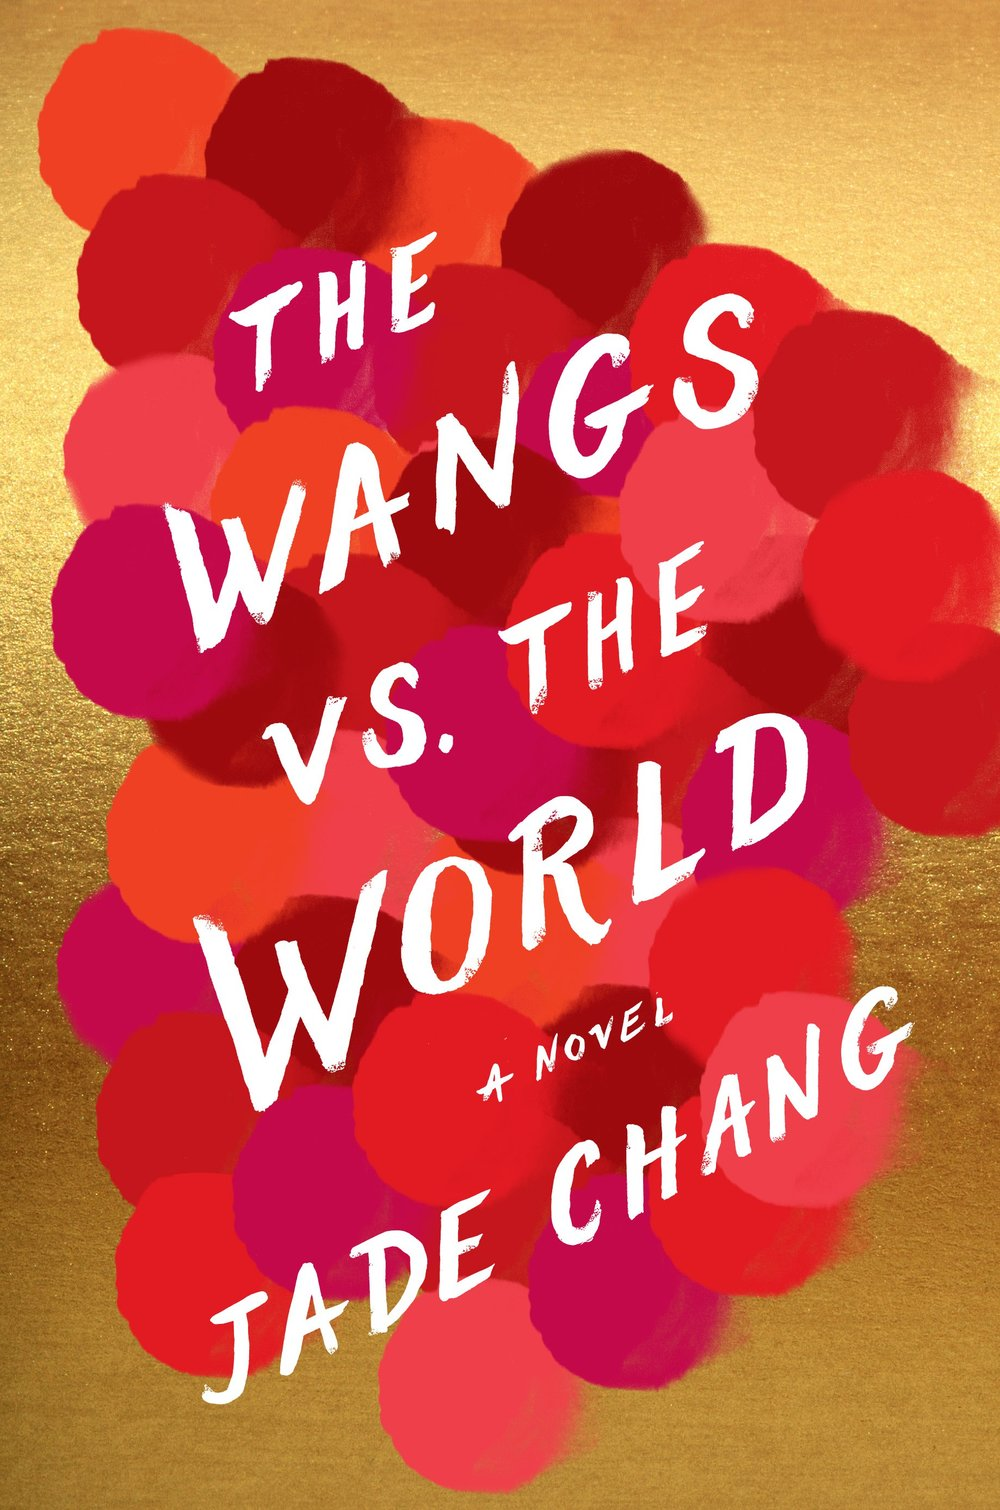 Wangs-vs-World-Jade-Chang-Out-Oct-4.jpg